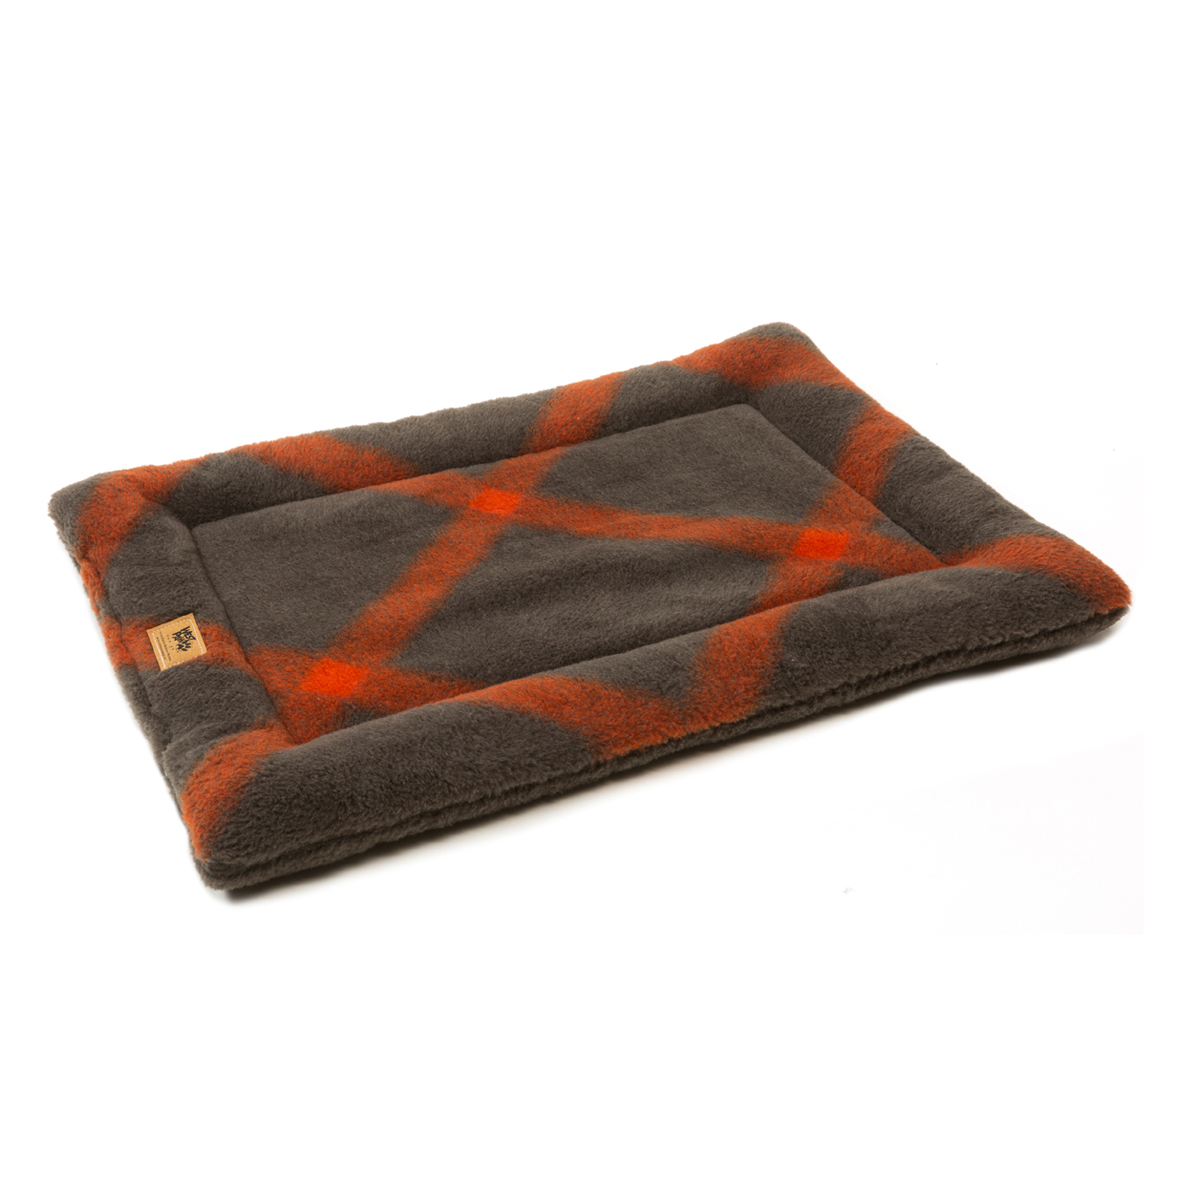 Montana Nap Pet Bed by West Paw Design - Plaid